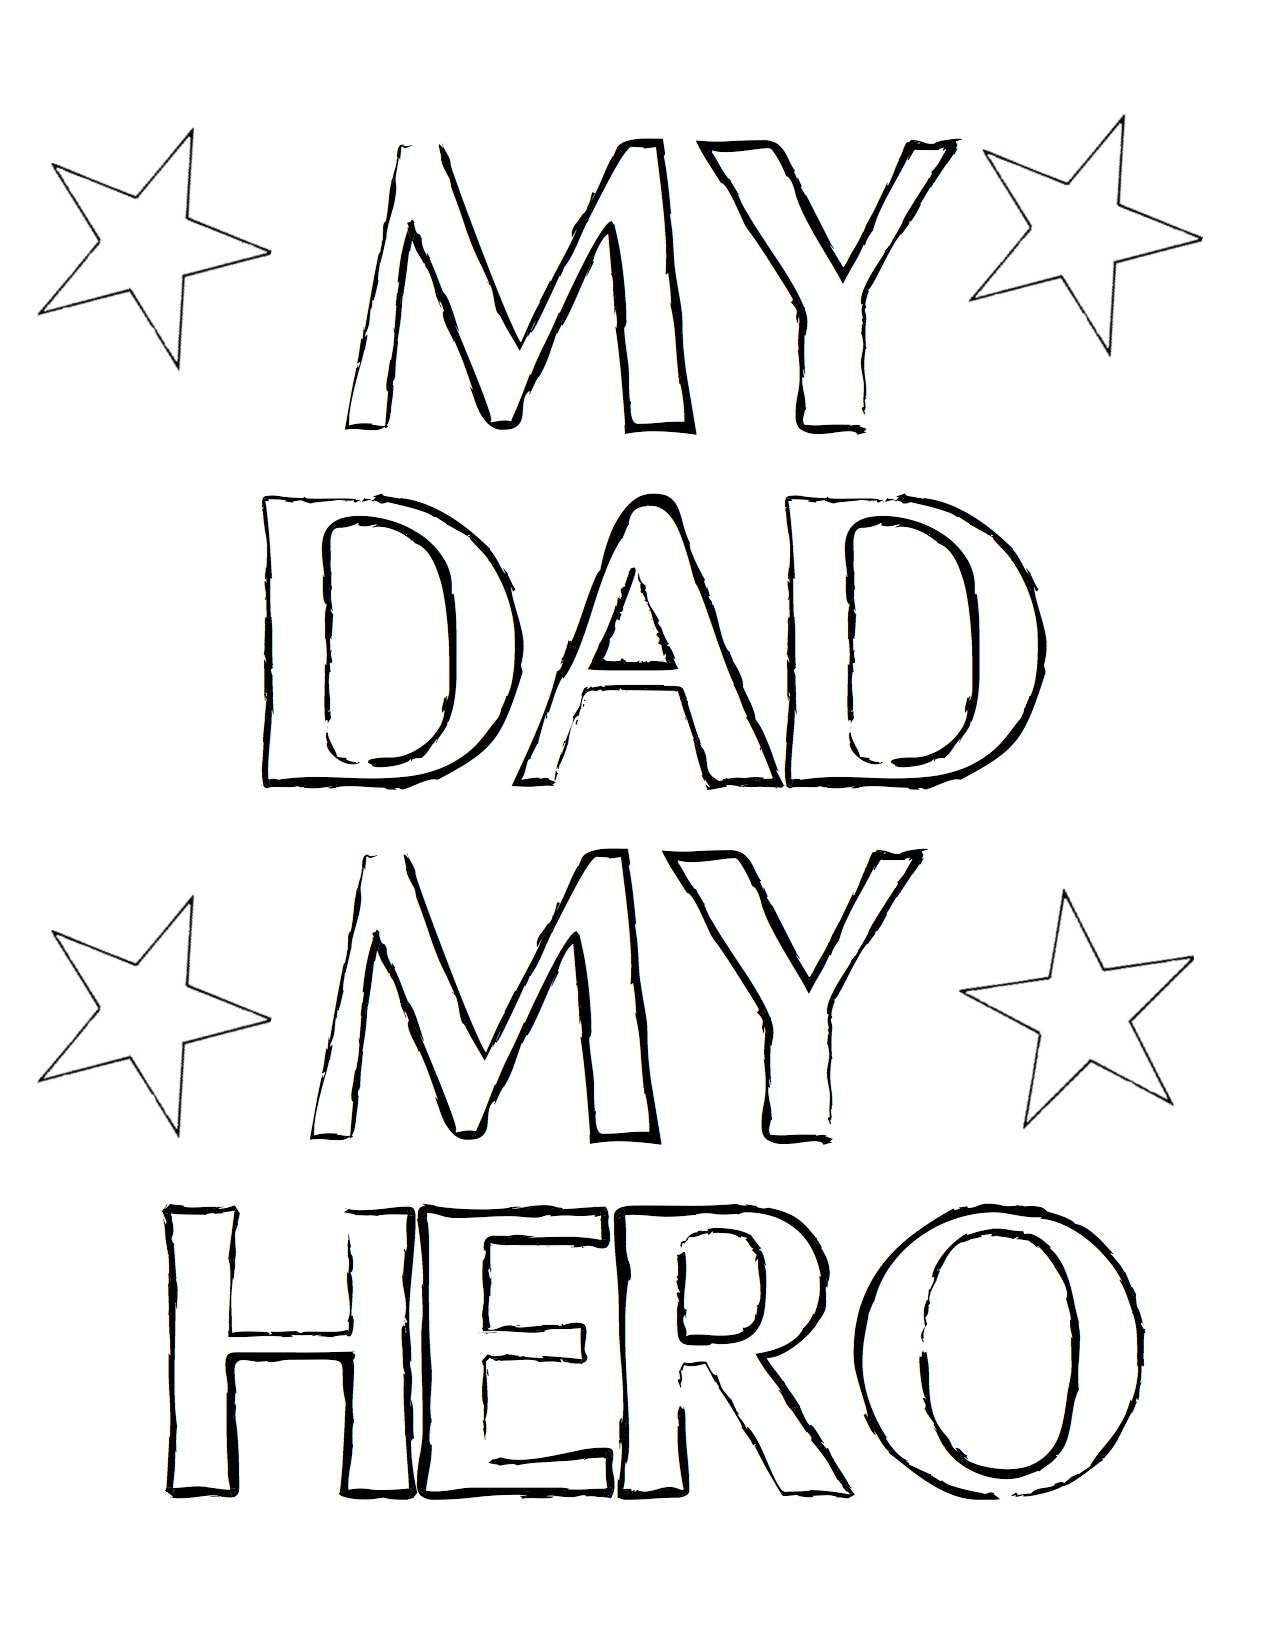 I Love My Daddy Coloring Pages  to Print 5f - To print for your project